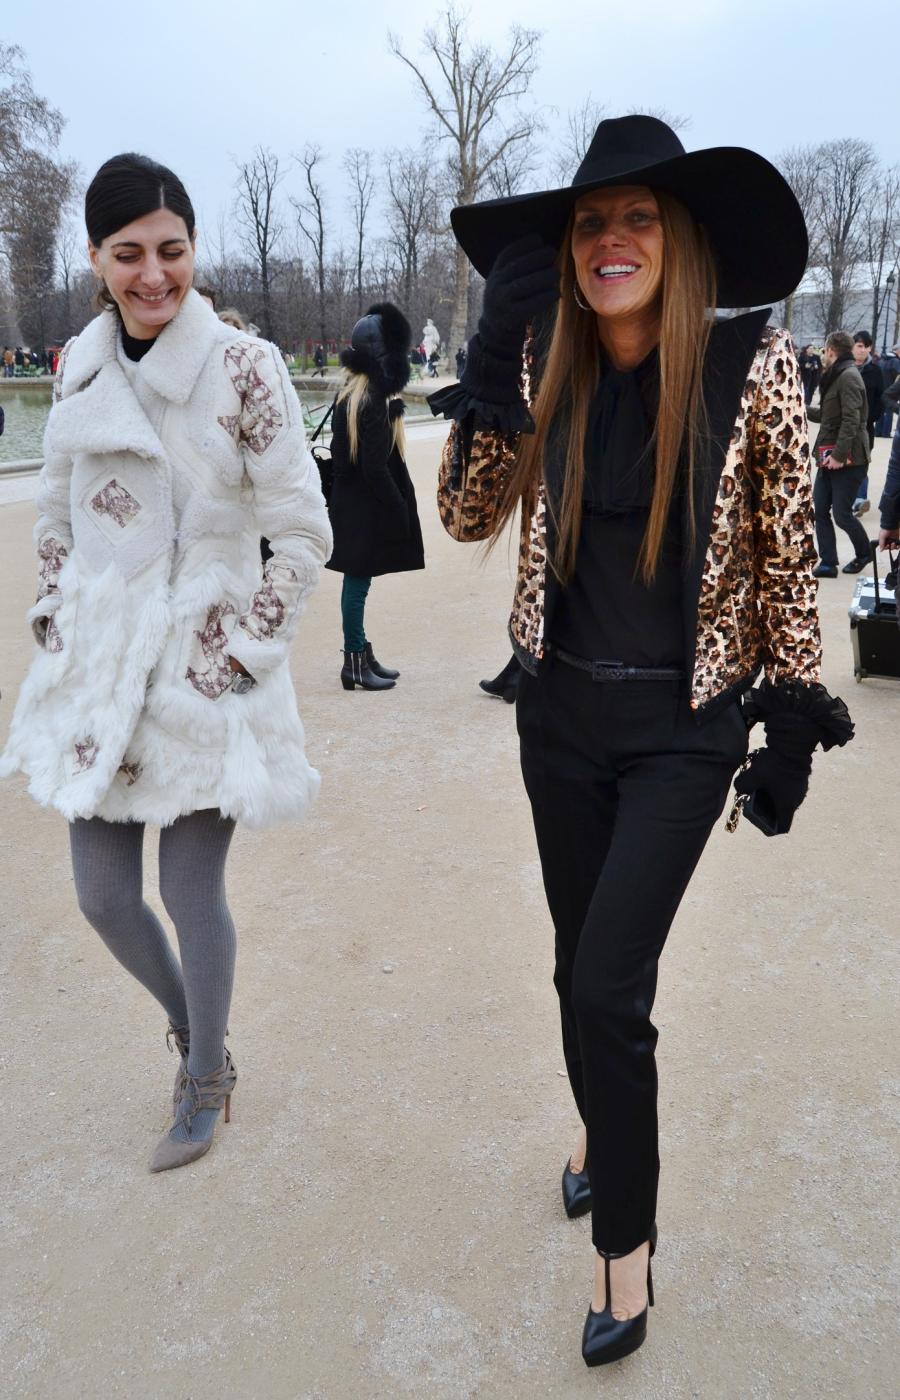 PFW DAY 5: OUTSIDE VIKTOR & ROLF